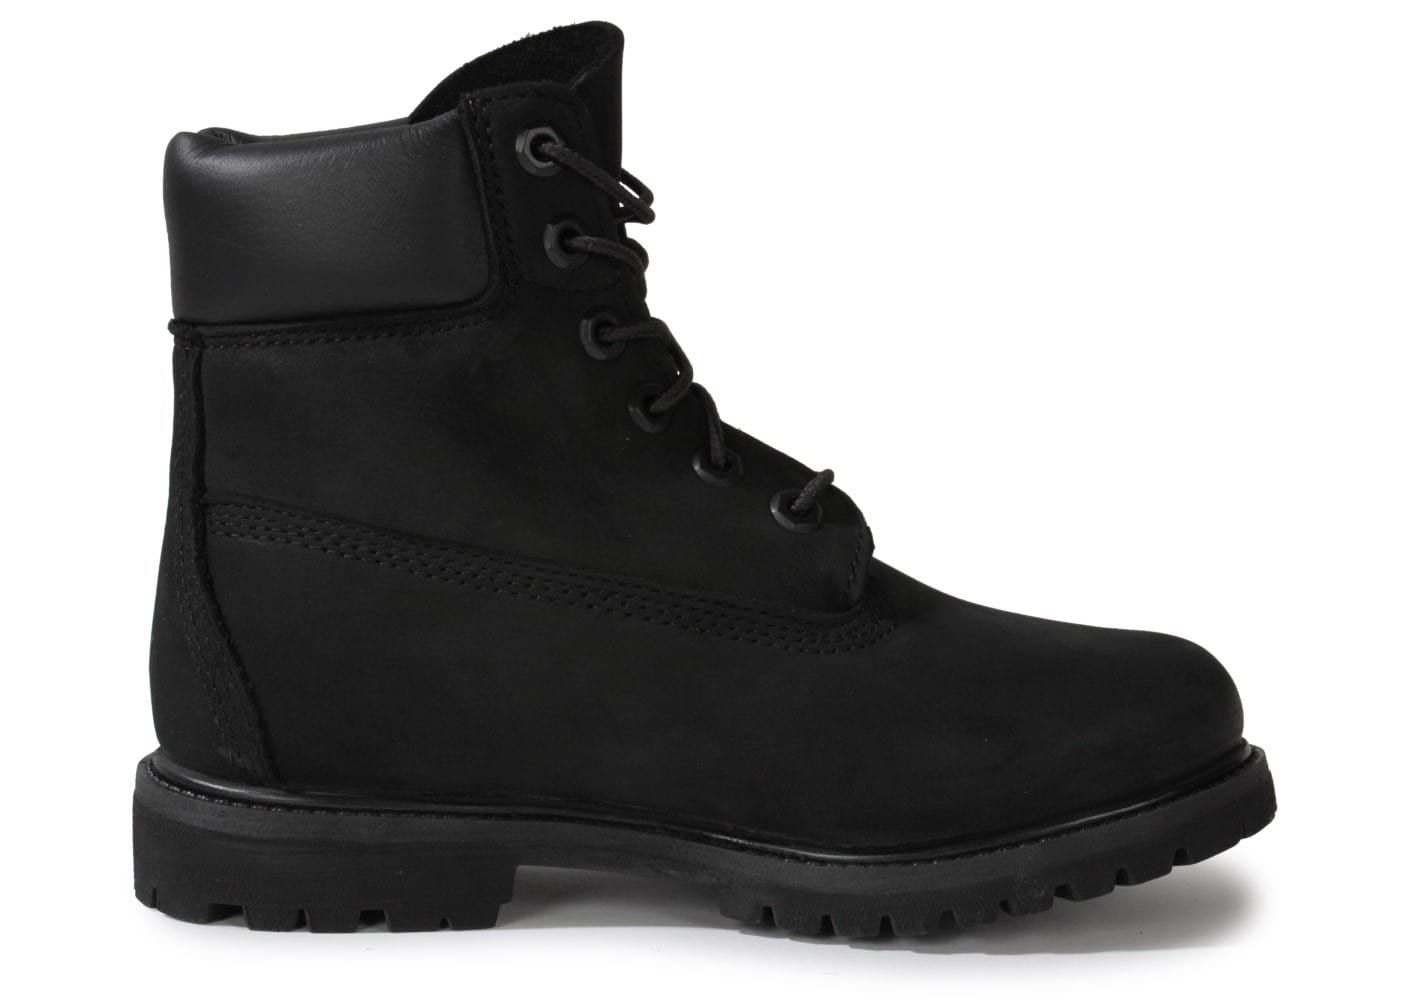 inch Noire Friday Chaussures 6 Black Waterproof Timberland Premium GqzUSMVp